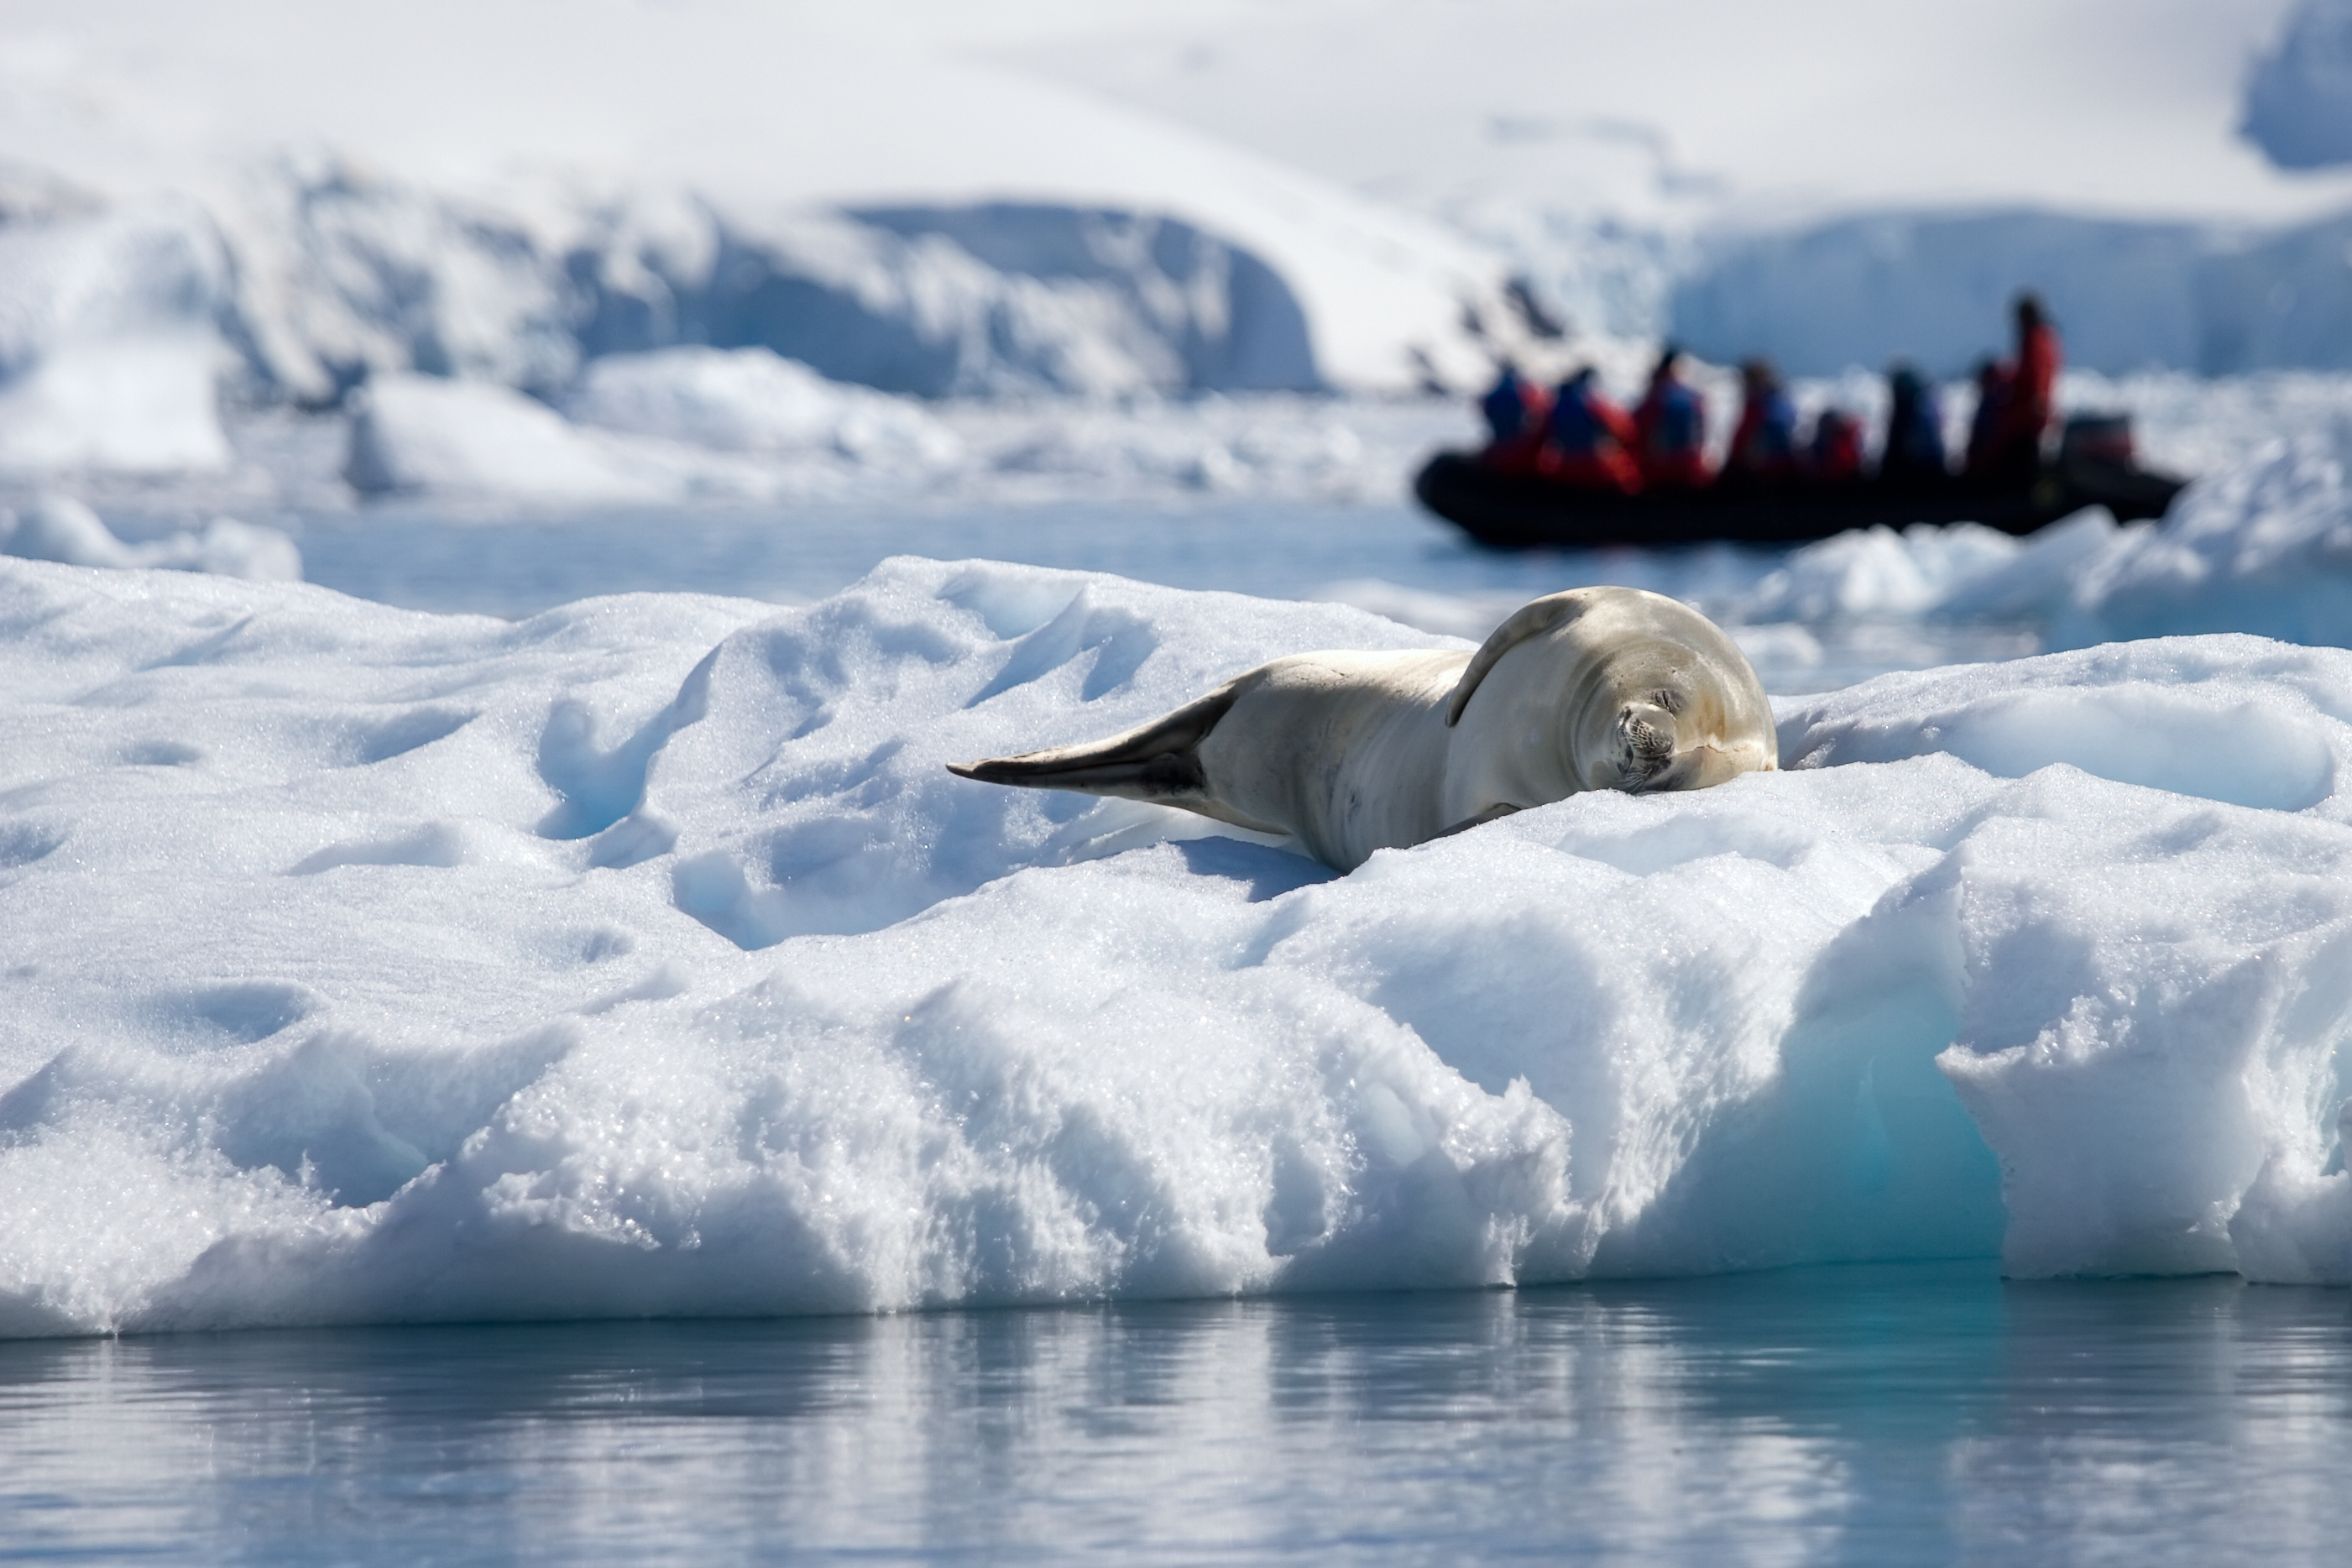 seal sleeping with a group of Antarctica travelers in the background